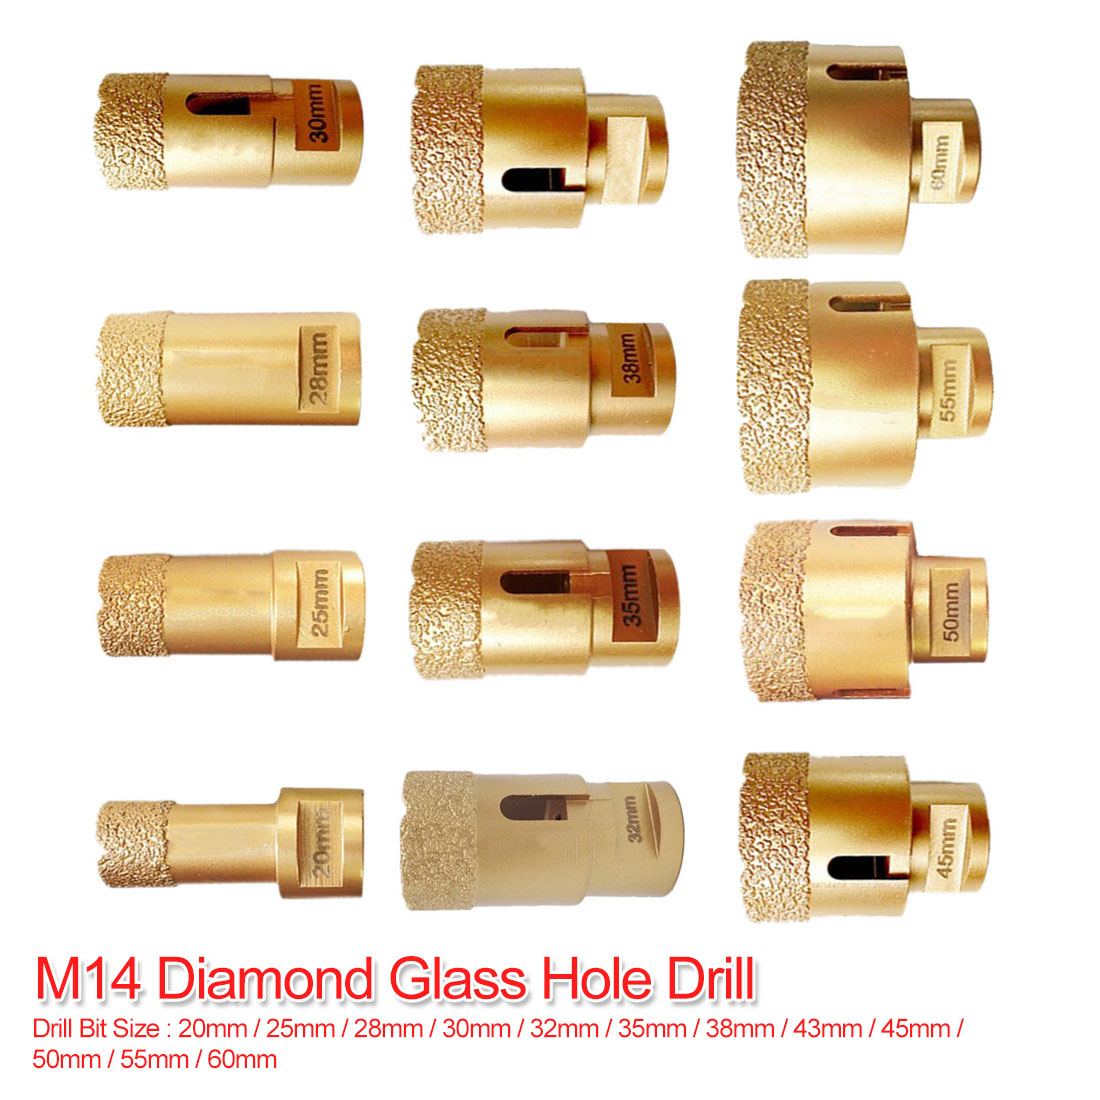 M14 Vacuum Brazed Diamond Drilling Core Bit Dry Diamond Drill Bit 20mm-60mm For Tile Hole Saw Stone Drill Bit Crown Drilling Bit